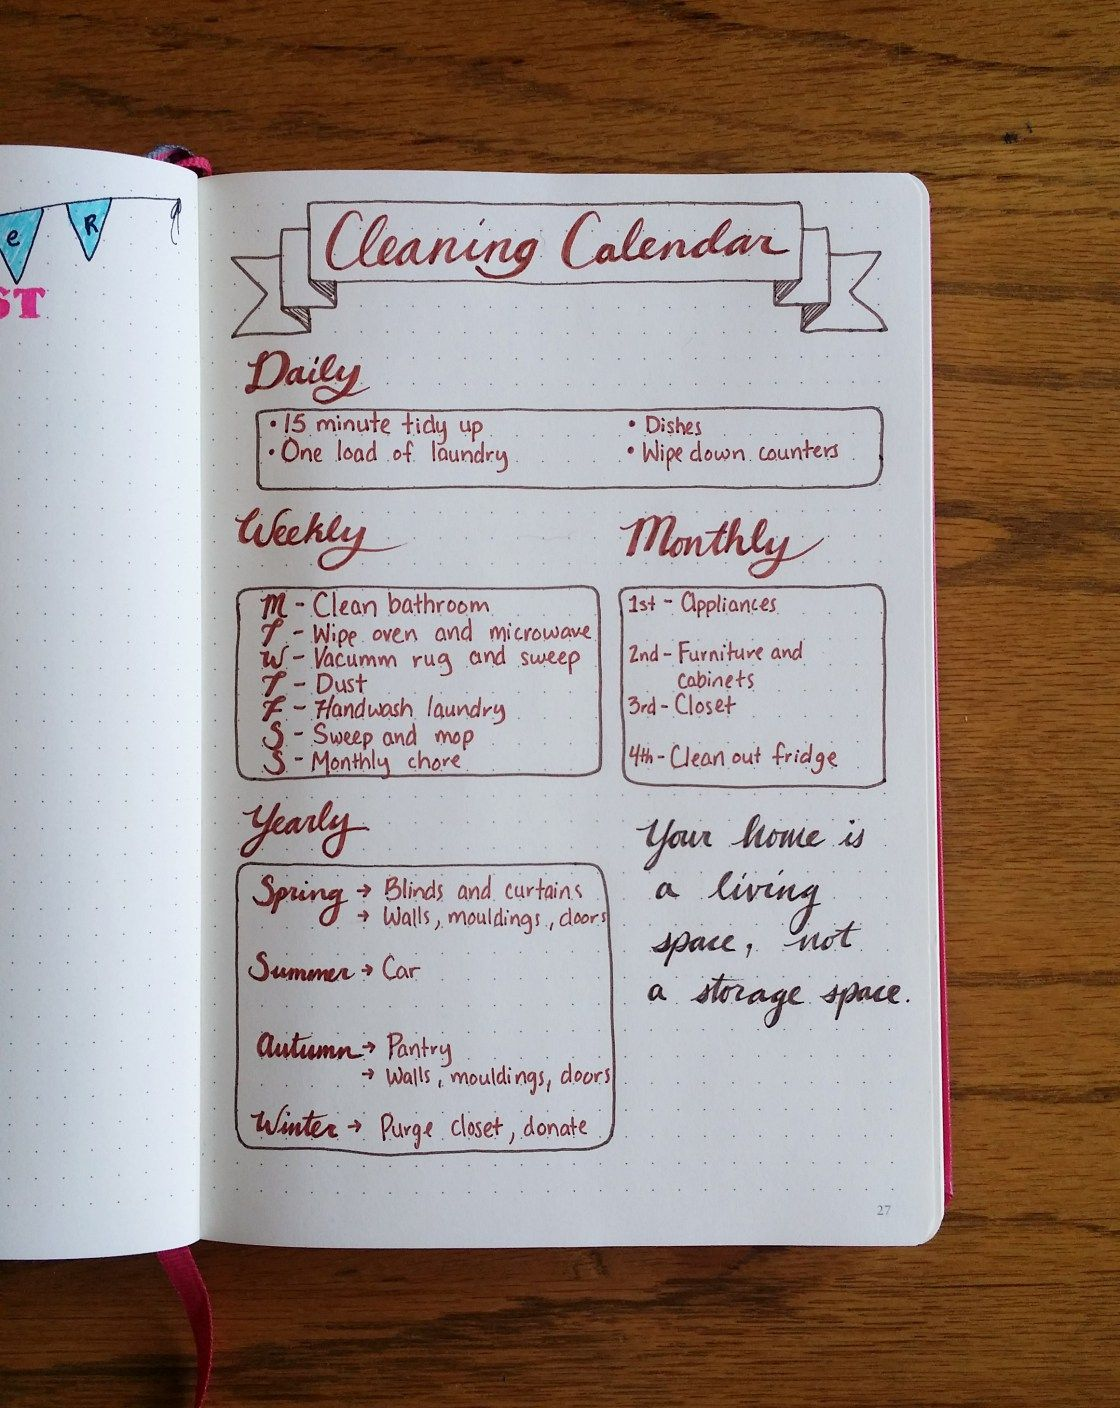 Creating a Cleaning Calendar in the Bullet Journal. I like the way this is laid out.